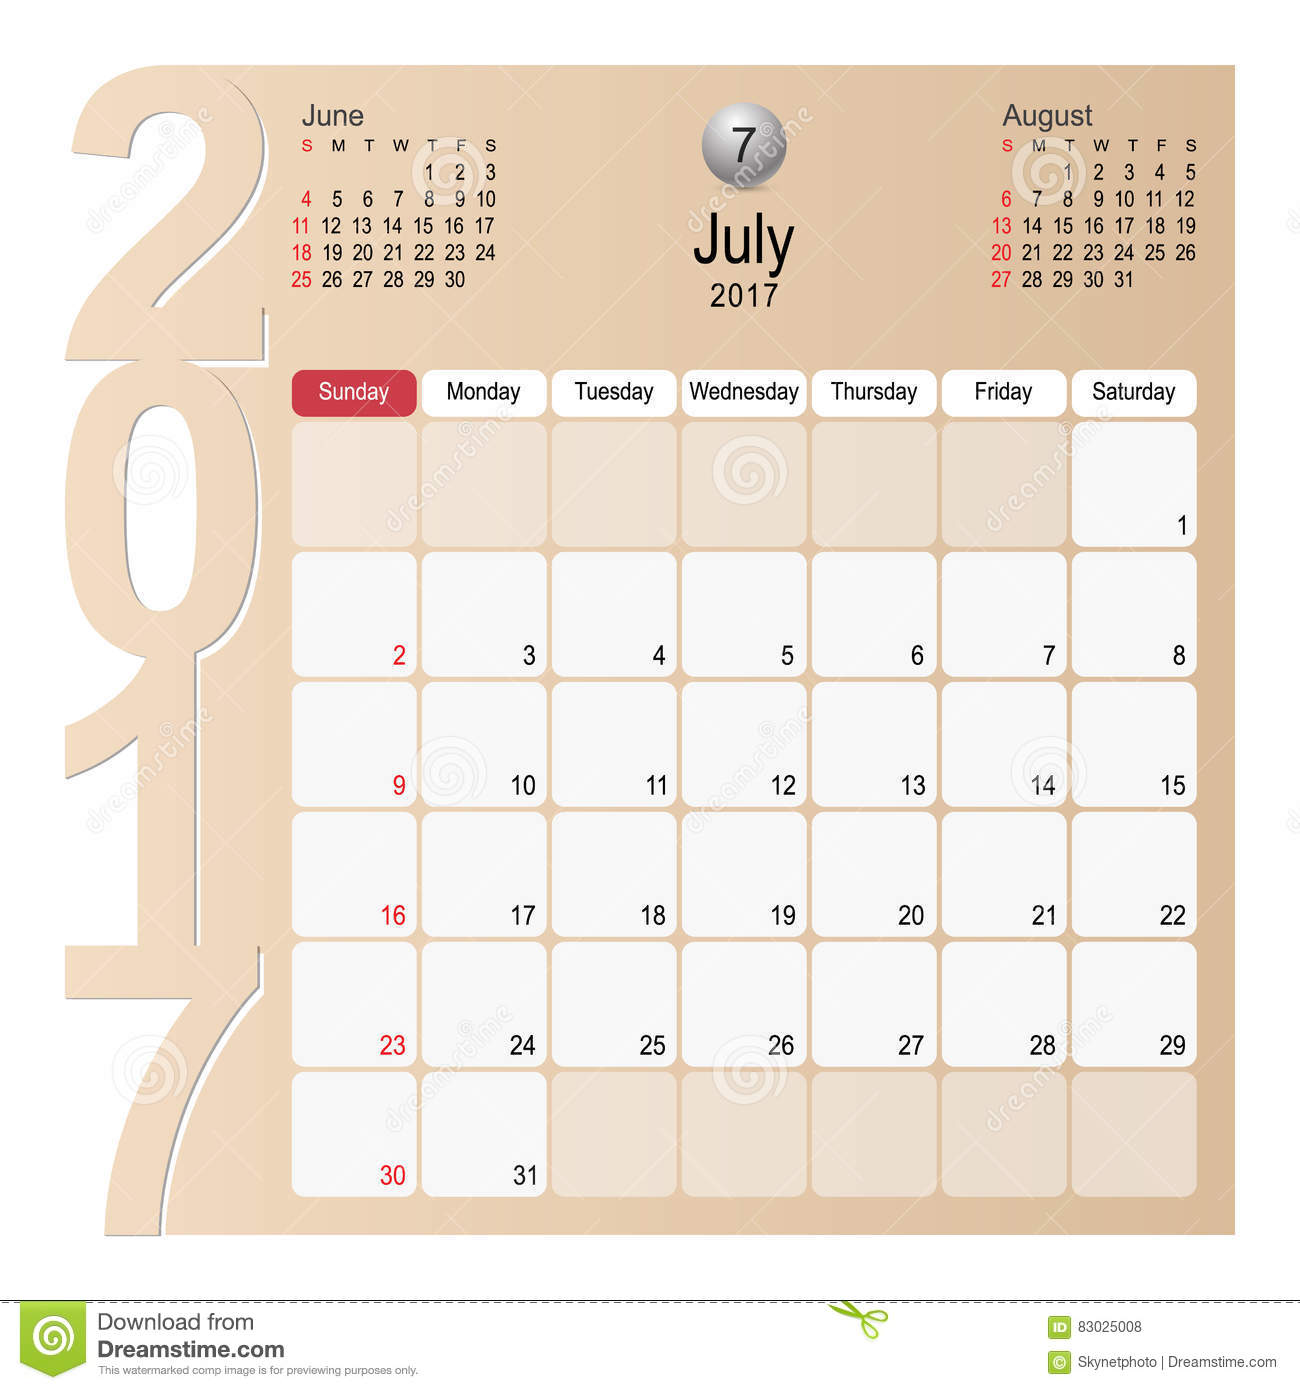 Calendar Planner Design : Calendar planner design july stock vector image